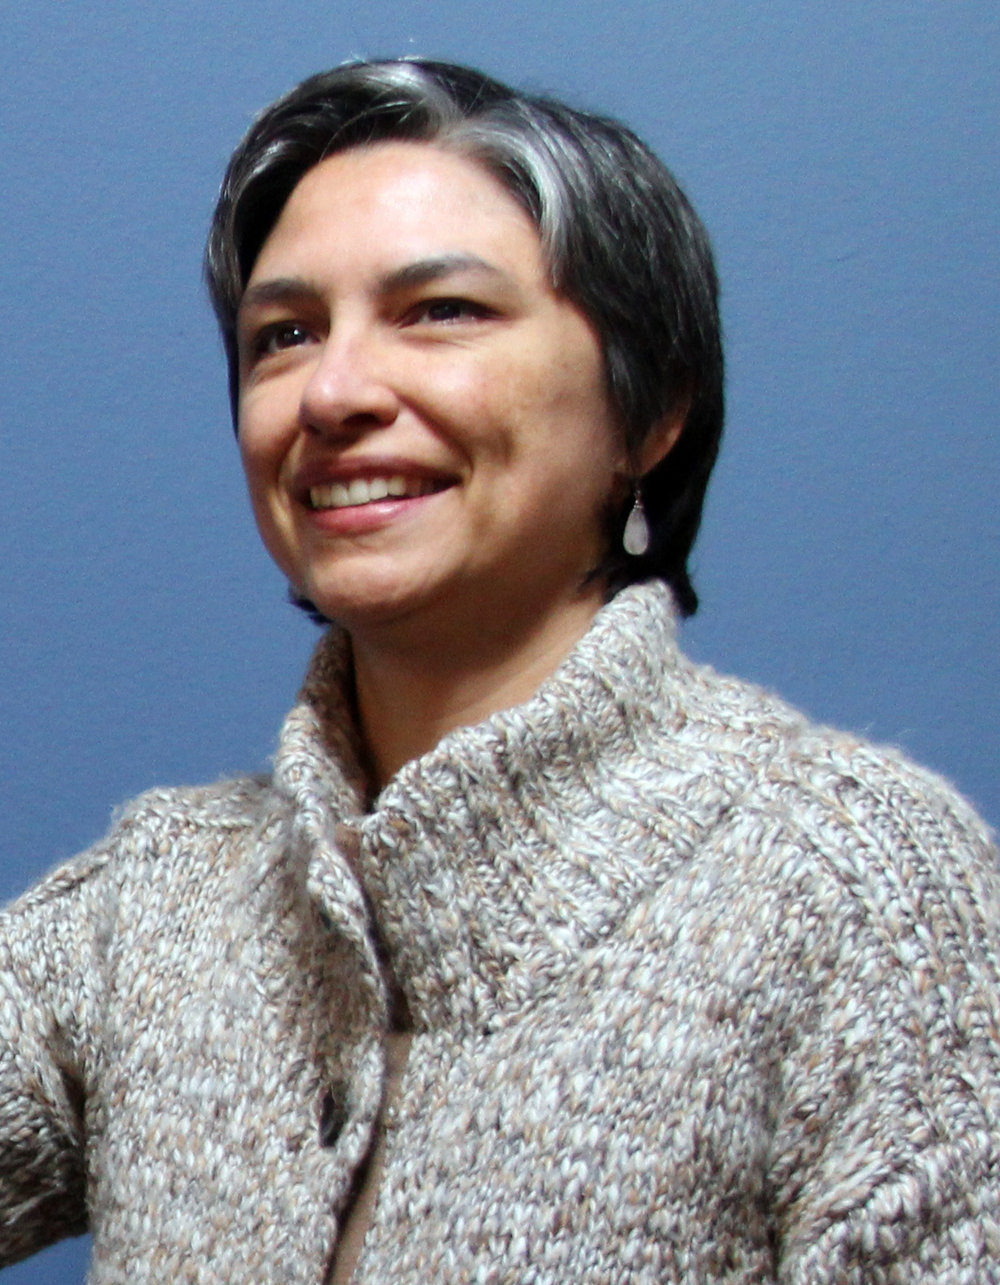 """- In 2017 Felicia Chávez completed a dissertation, """"Sustainability and Spirituality: Common Threads and Common Threats."""" She also organized Systems Thinking Marin under MarinLink, its mission is to raise awareness about, and adoption of, systems thinking in Marin County. First-hand spiritual experience contributes to a more equitable, sustainable local system."""